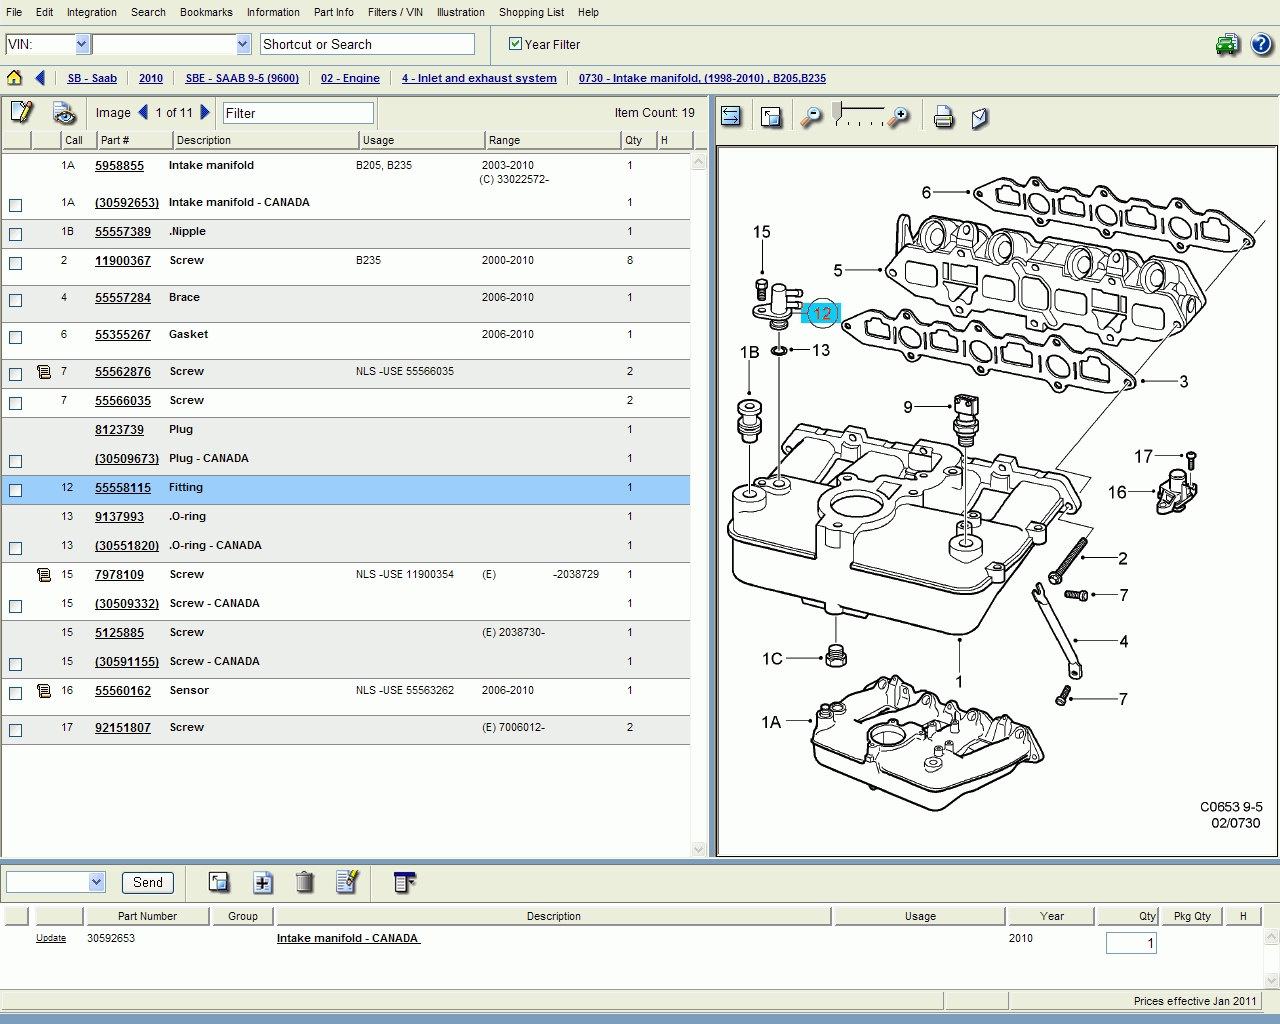 Gm North America Epc Auto Electronic Parts Catalogue within Gm Parts Diagrams With Part Numbers